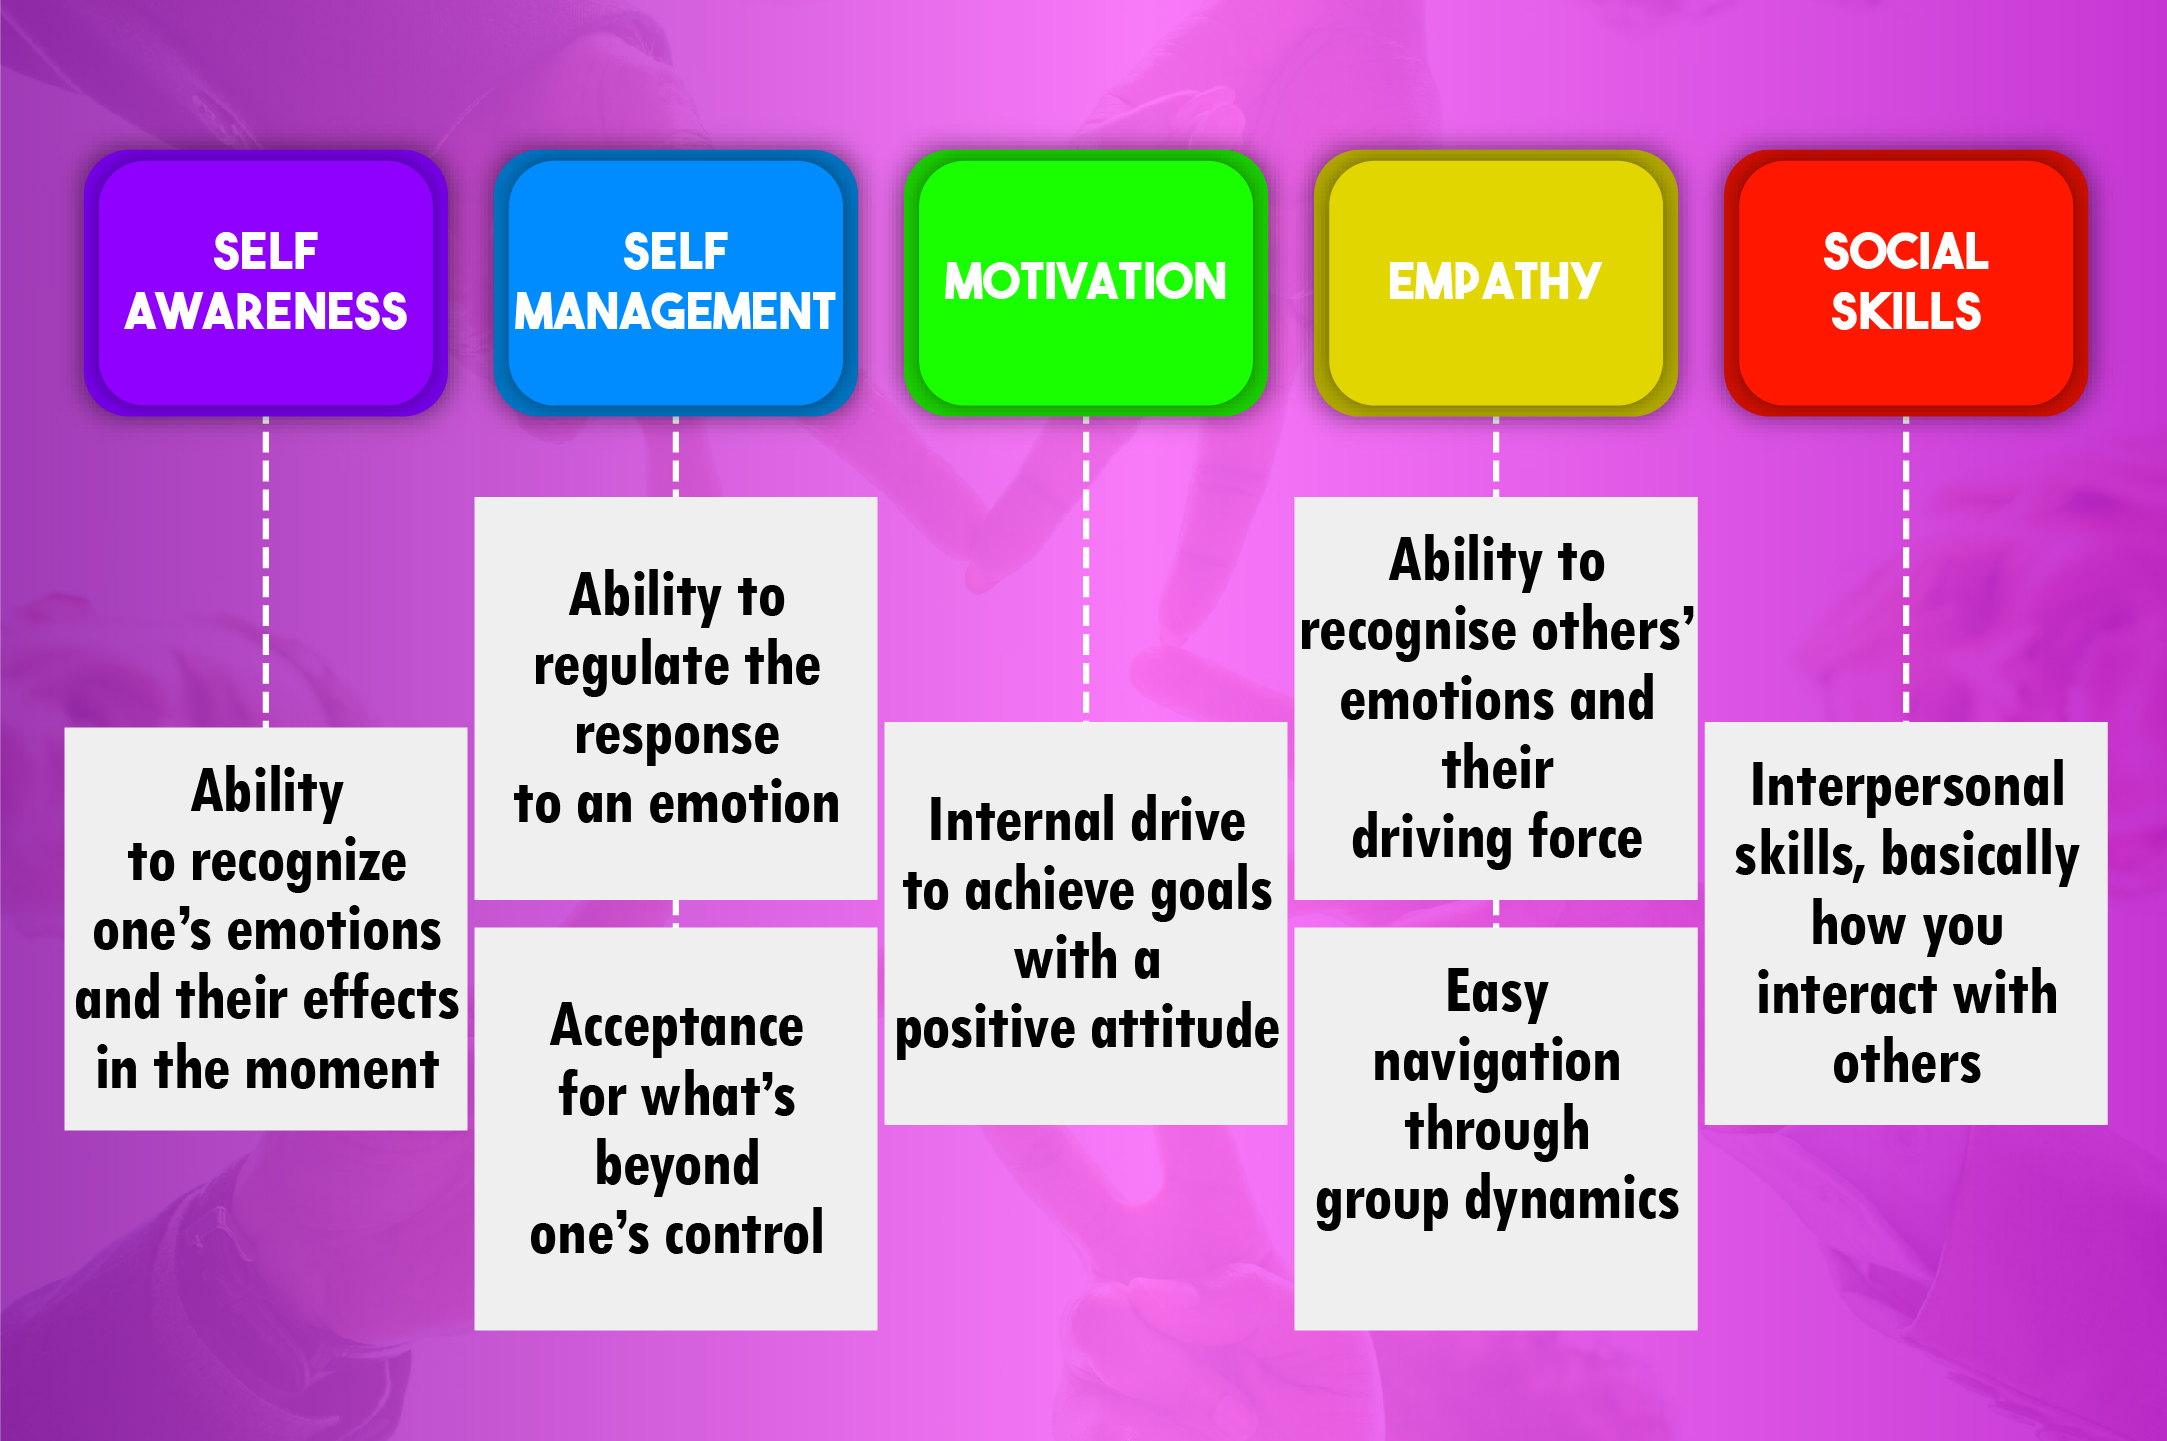 Social Emotional Intelligence Is >> Why Is Emotional Intelligence Important For Social Media Marketing